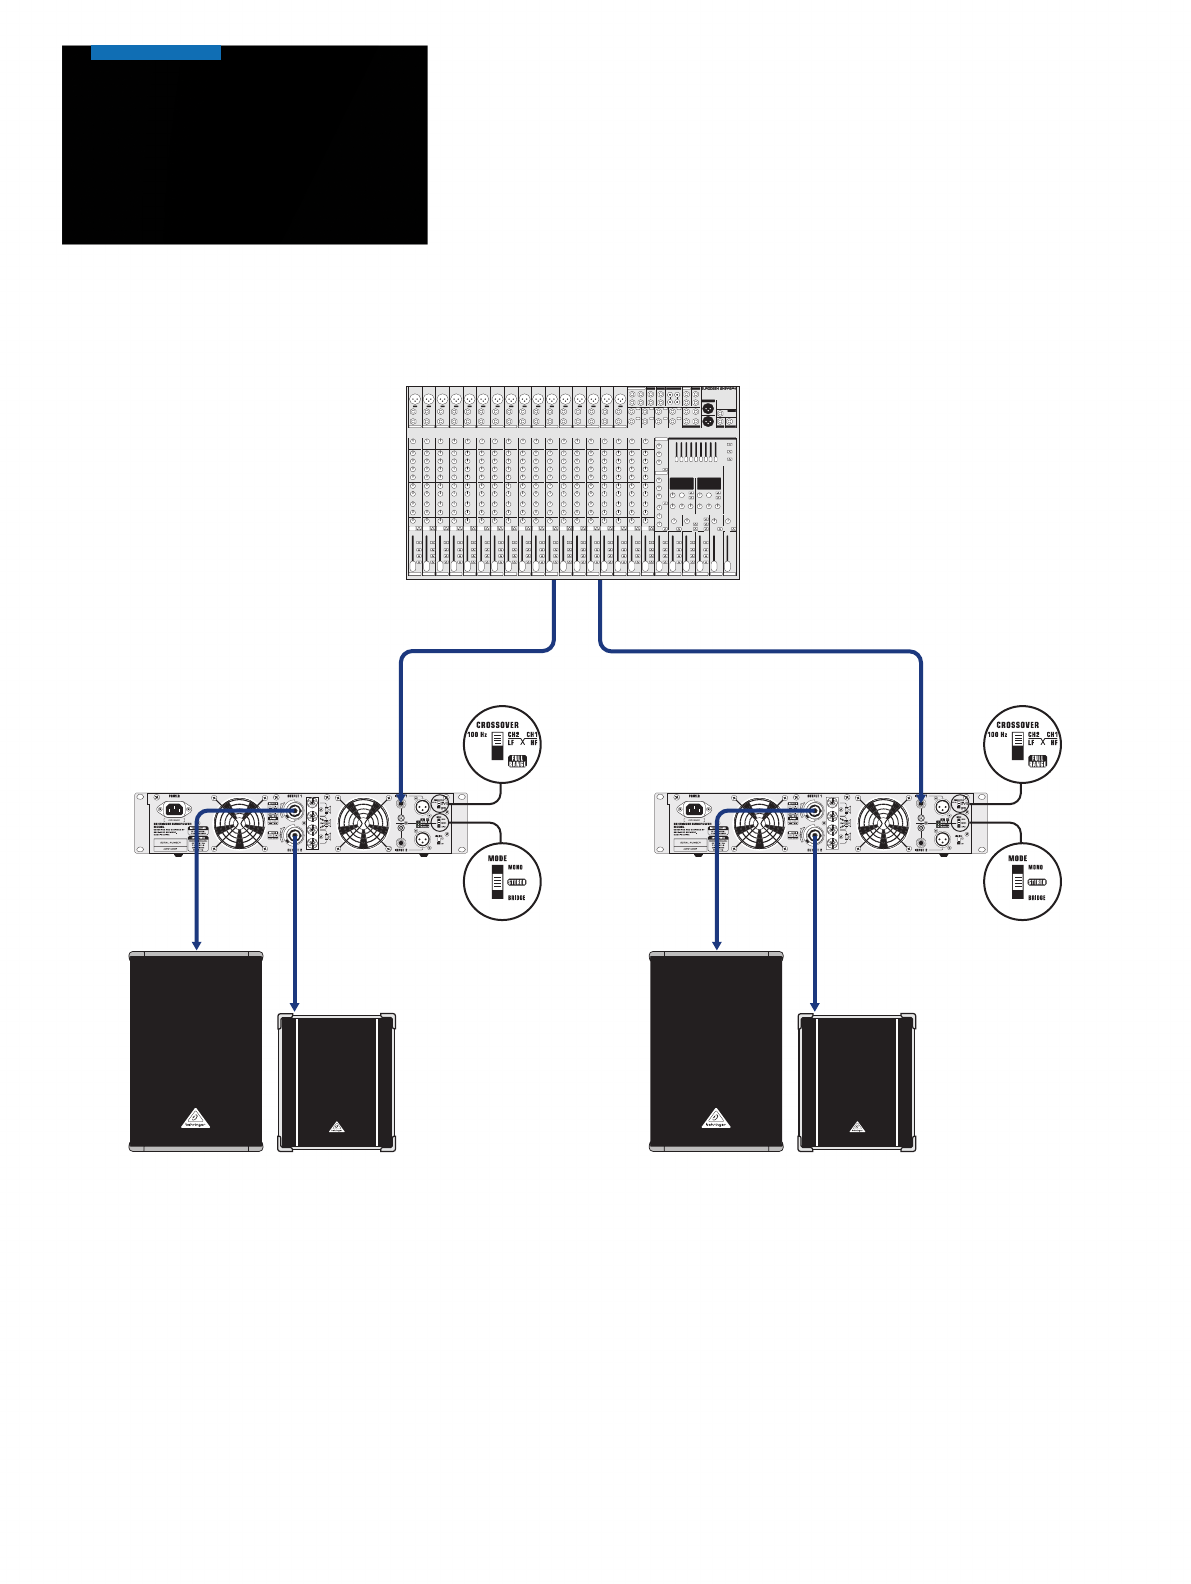 Behringer Europower Epx2800 Brochure Epx 4000 Crossover Wiring Diagram Page 4 Of 5